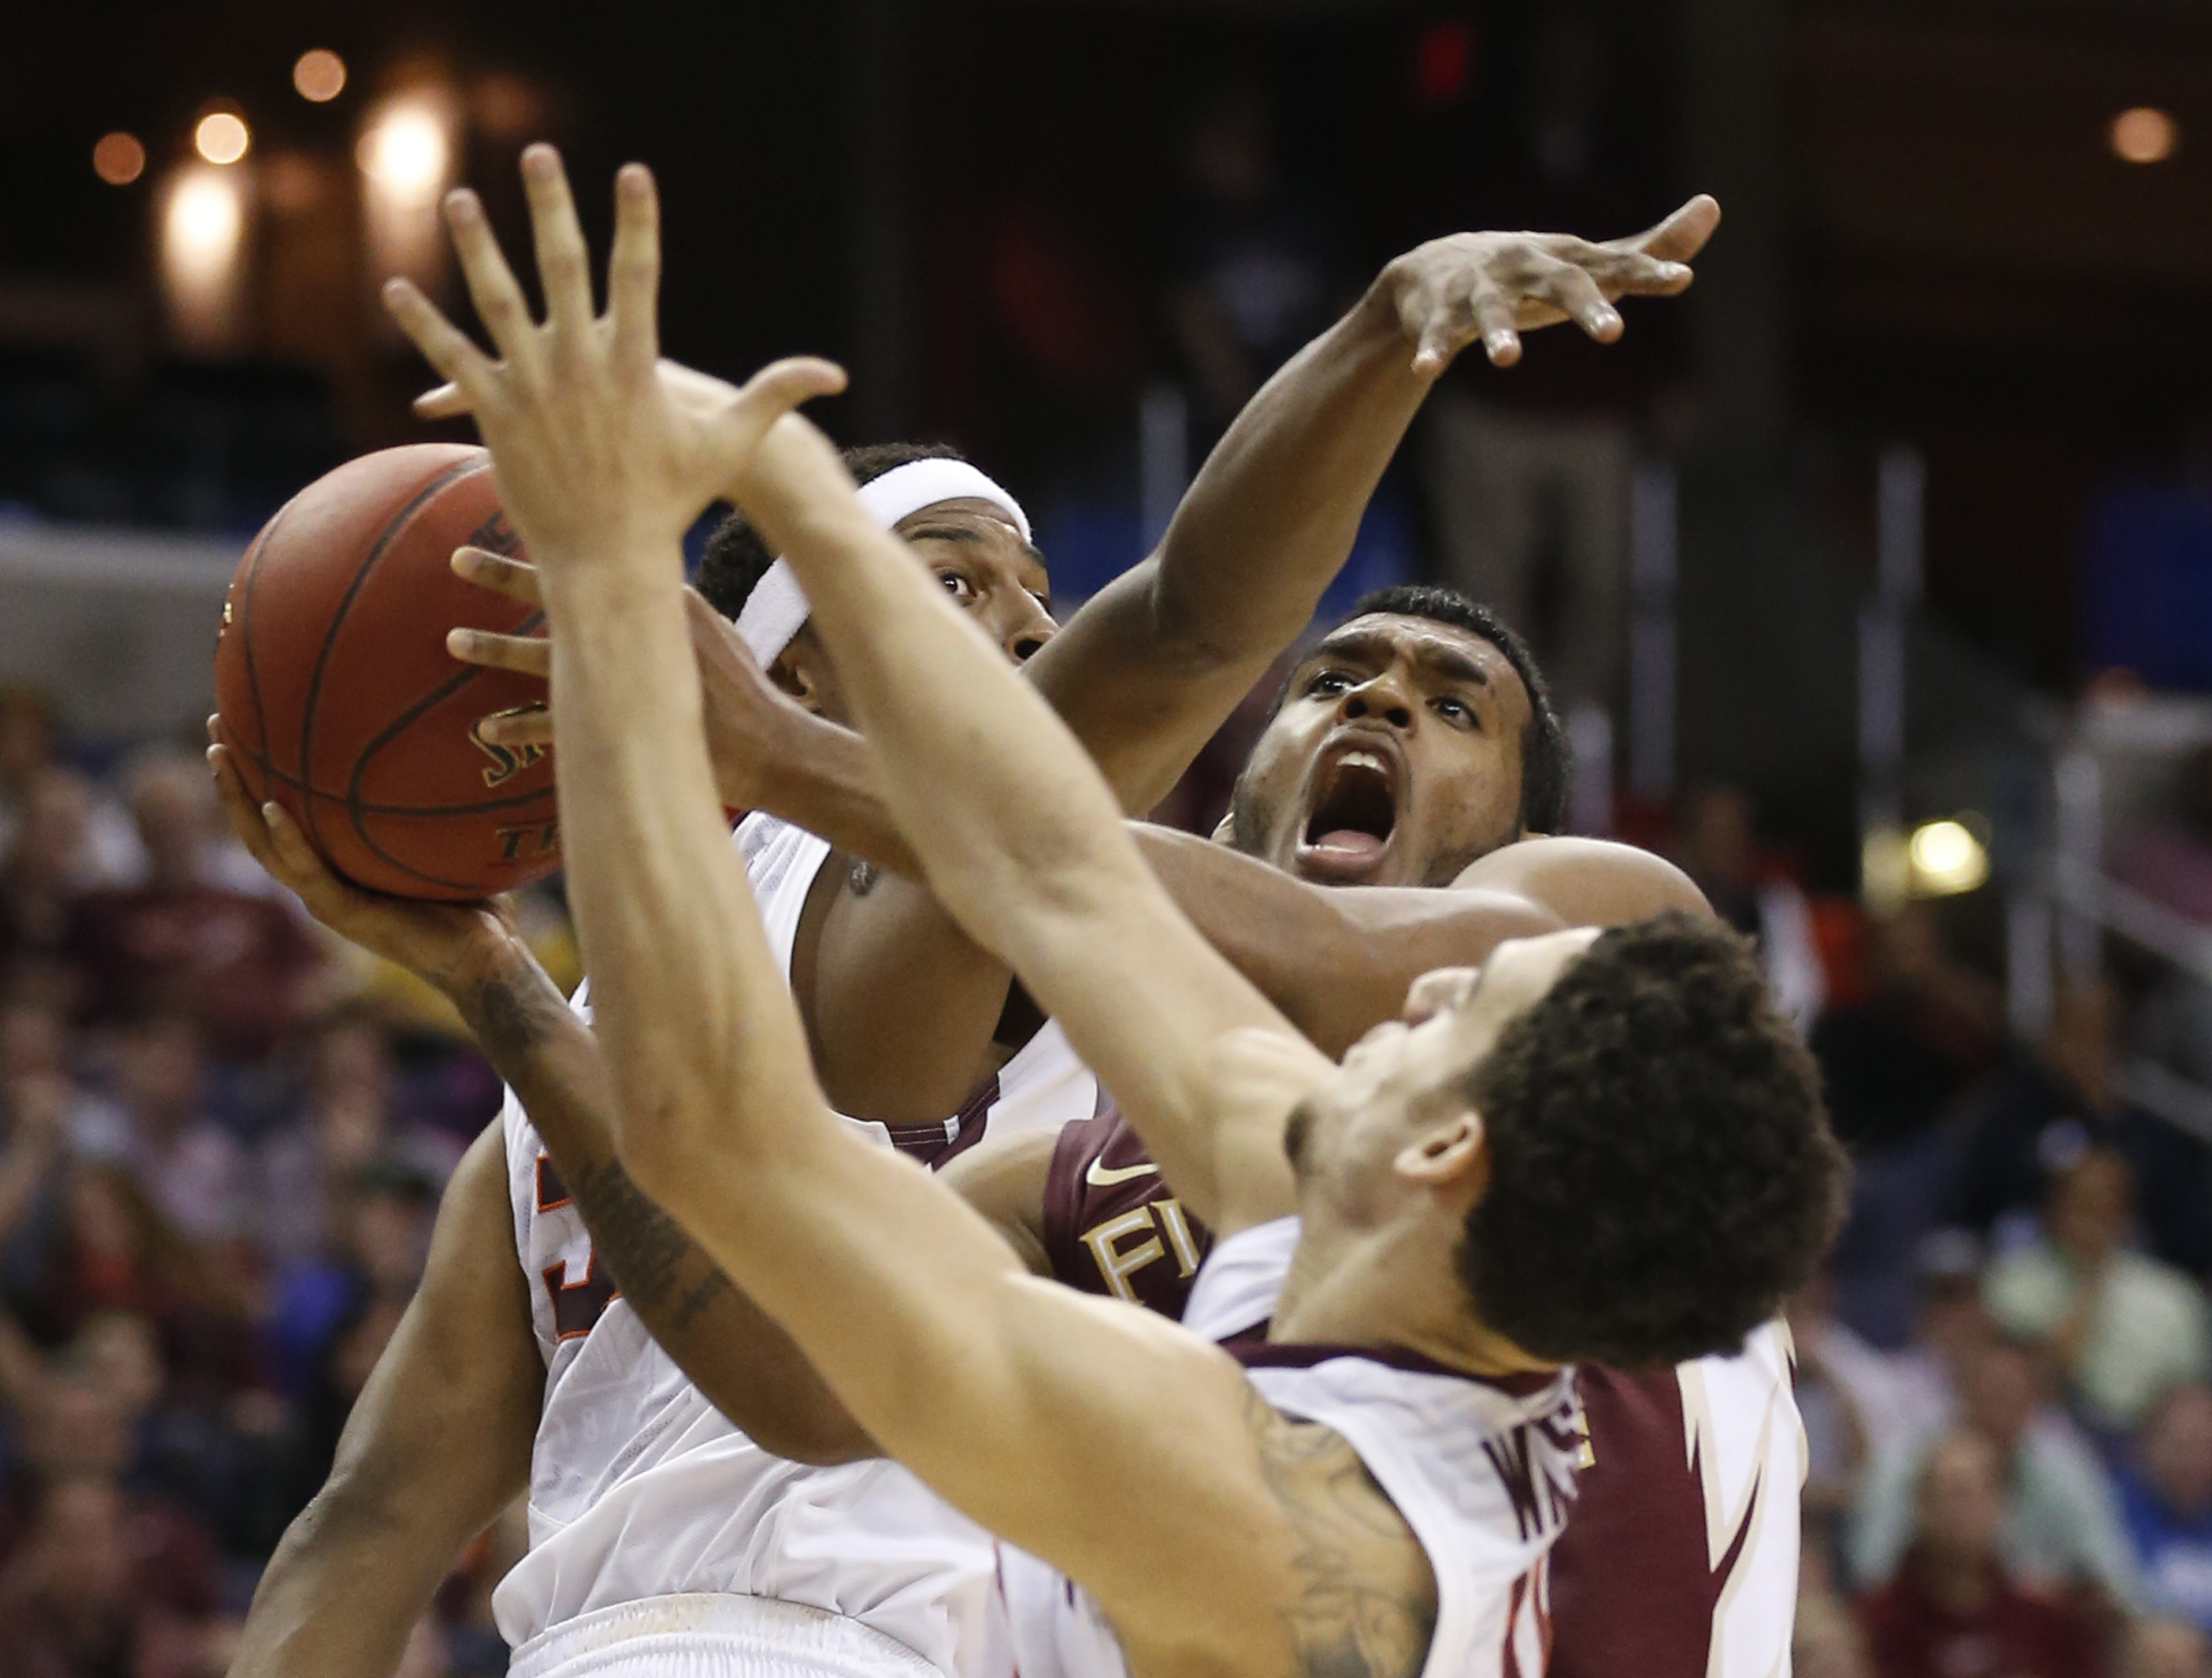 Florida State guard Xavier Rathan-Mayes, center, looks for a shot as Virginia Tech forward Zach LeDay, left, and guard Devin Wilson defend during the first half of an NCAA college basketball game in the Atlantic Coast Conference men's tournament Wednesday